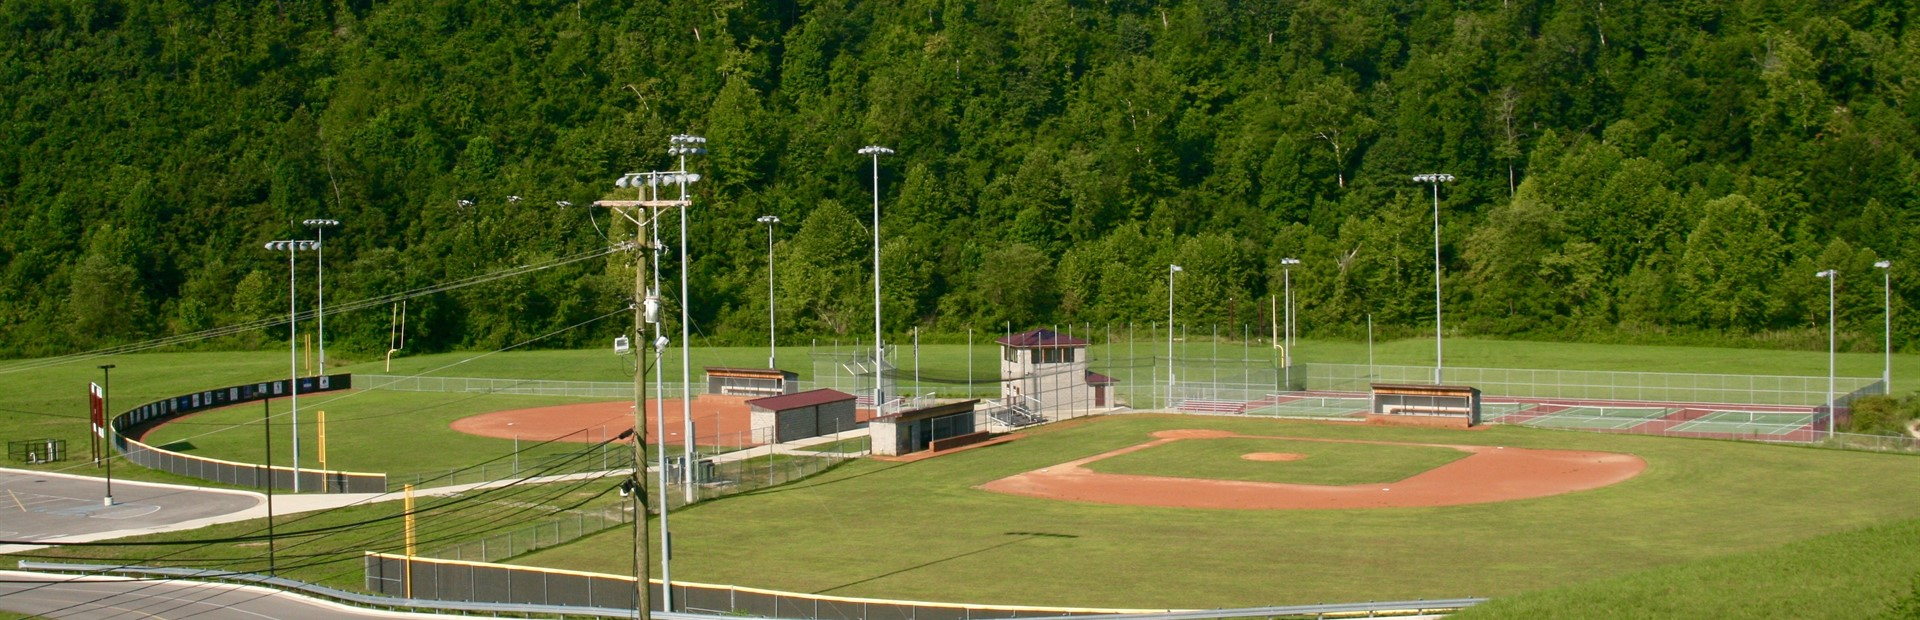 Tim Bostic Memorial Sports Complex